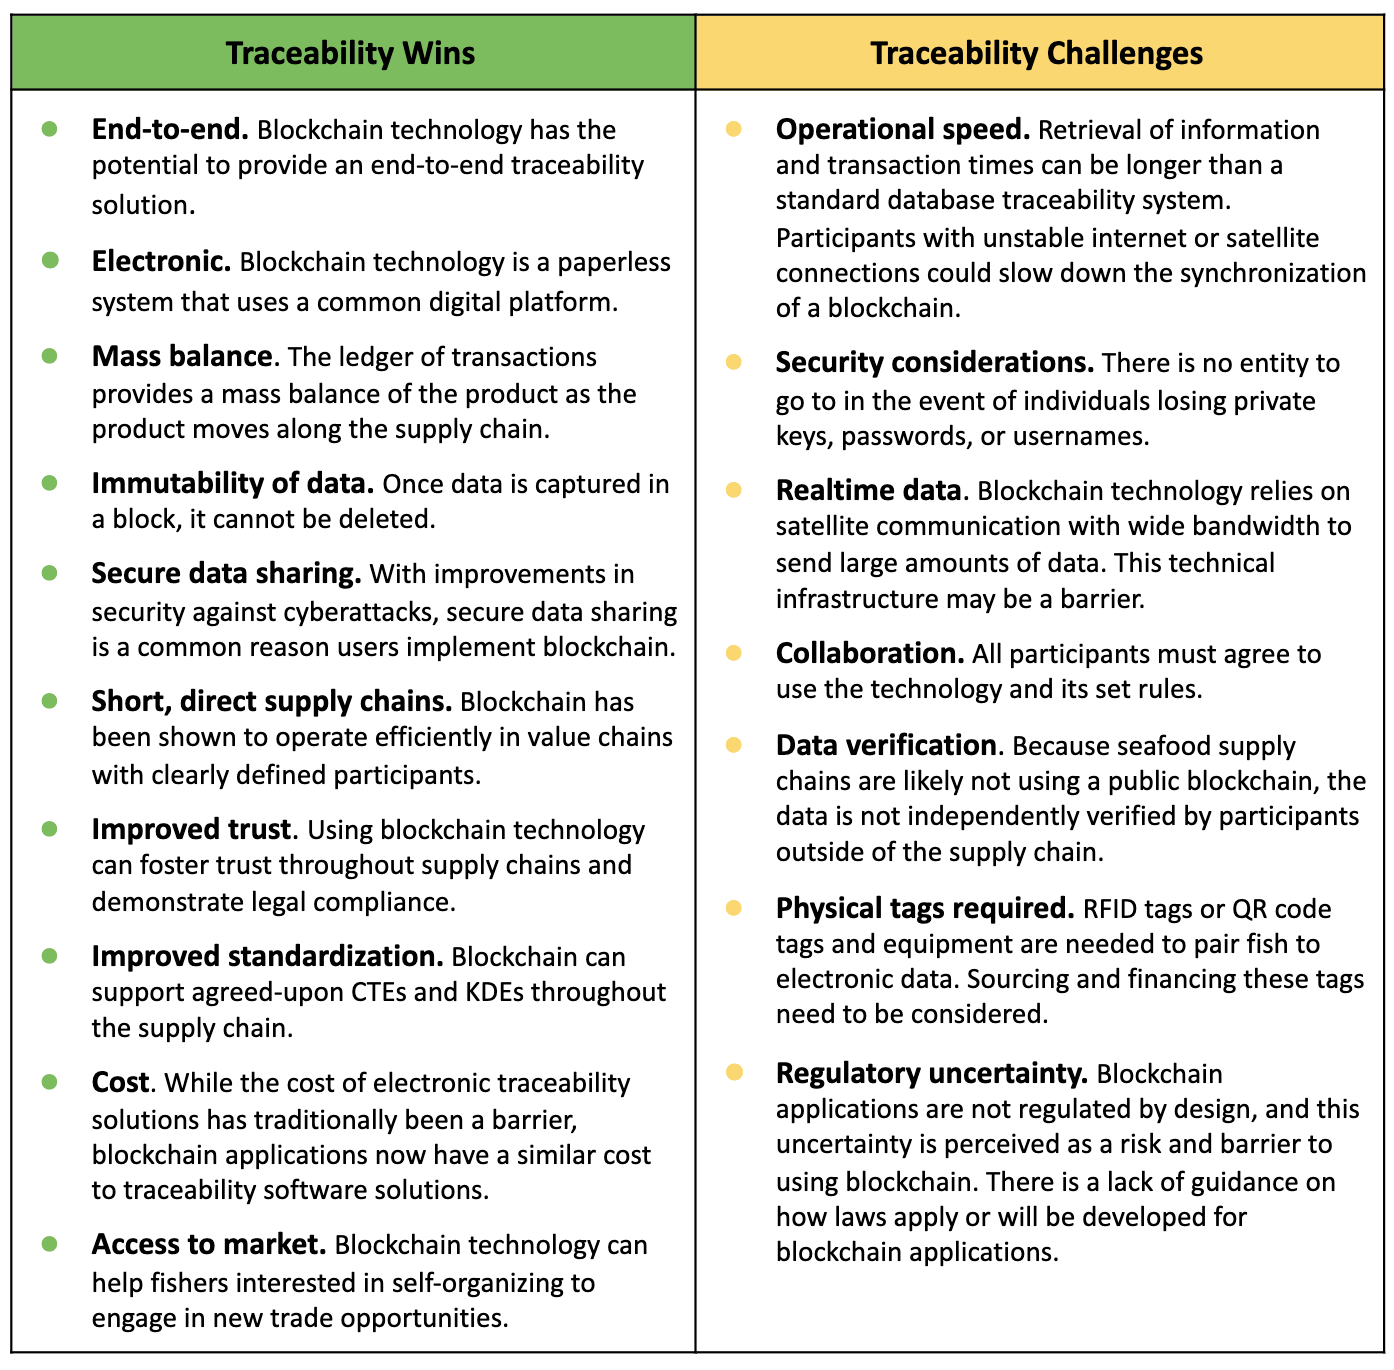 image of blockchain wins and challenges